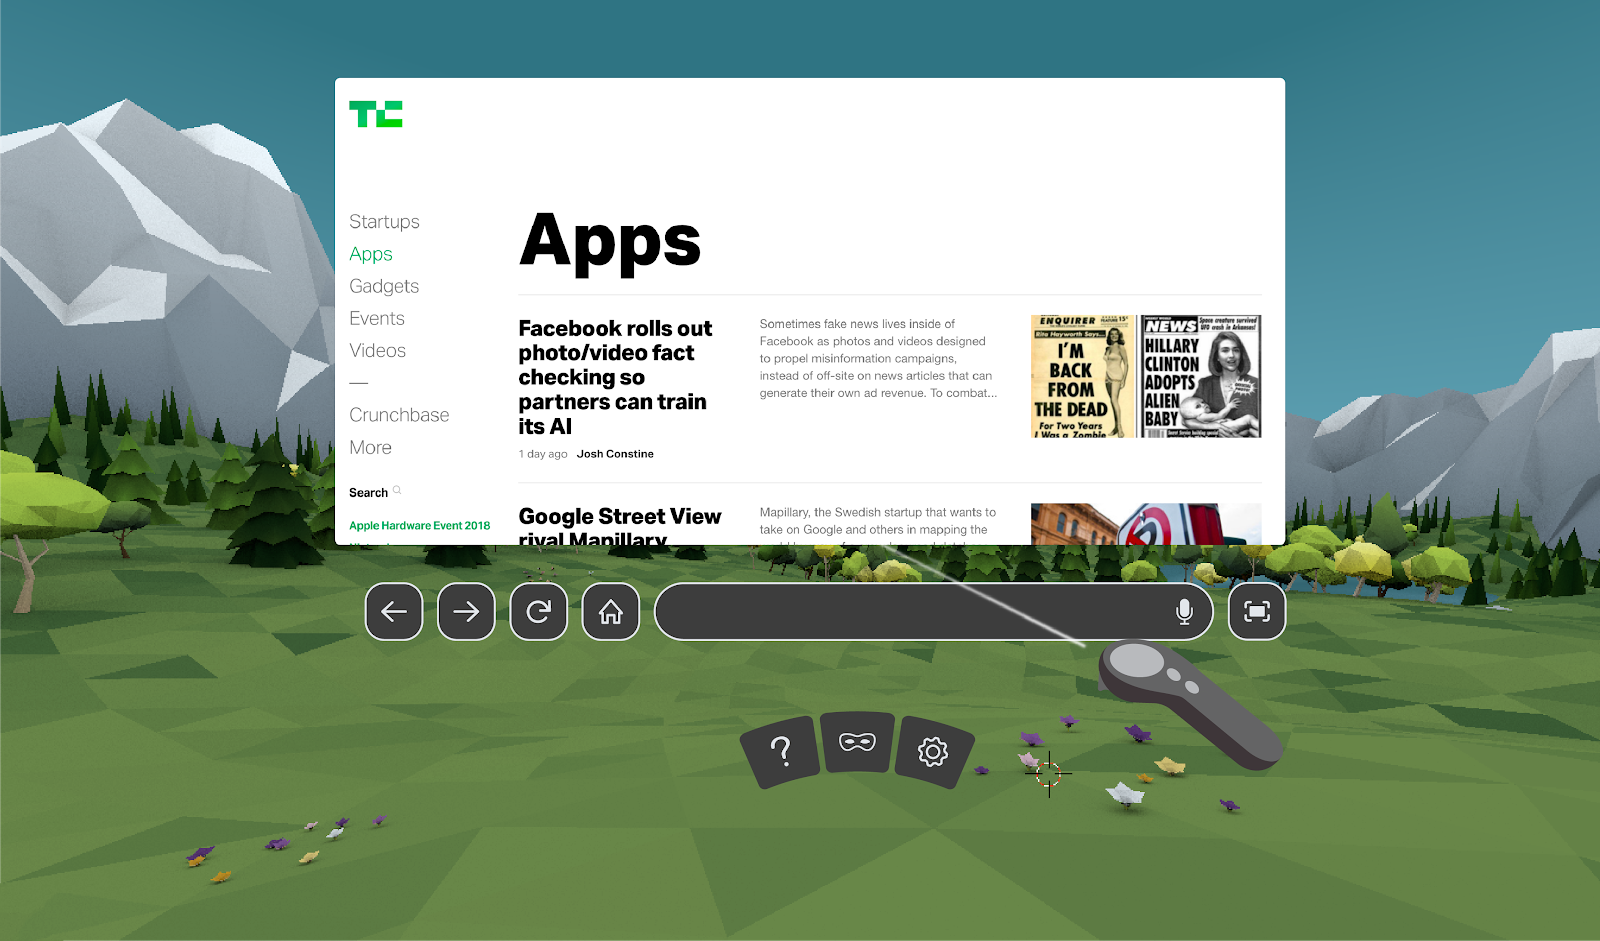 techcrunch.com - Lucas Matney - Mozilla's Firefox Reality web browser is now available